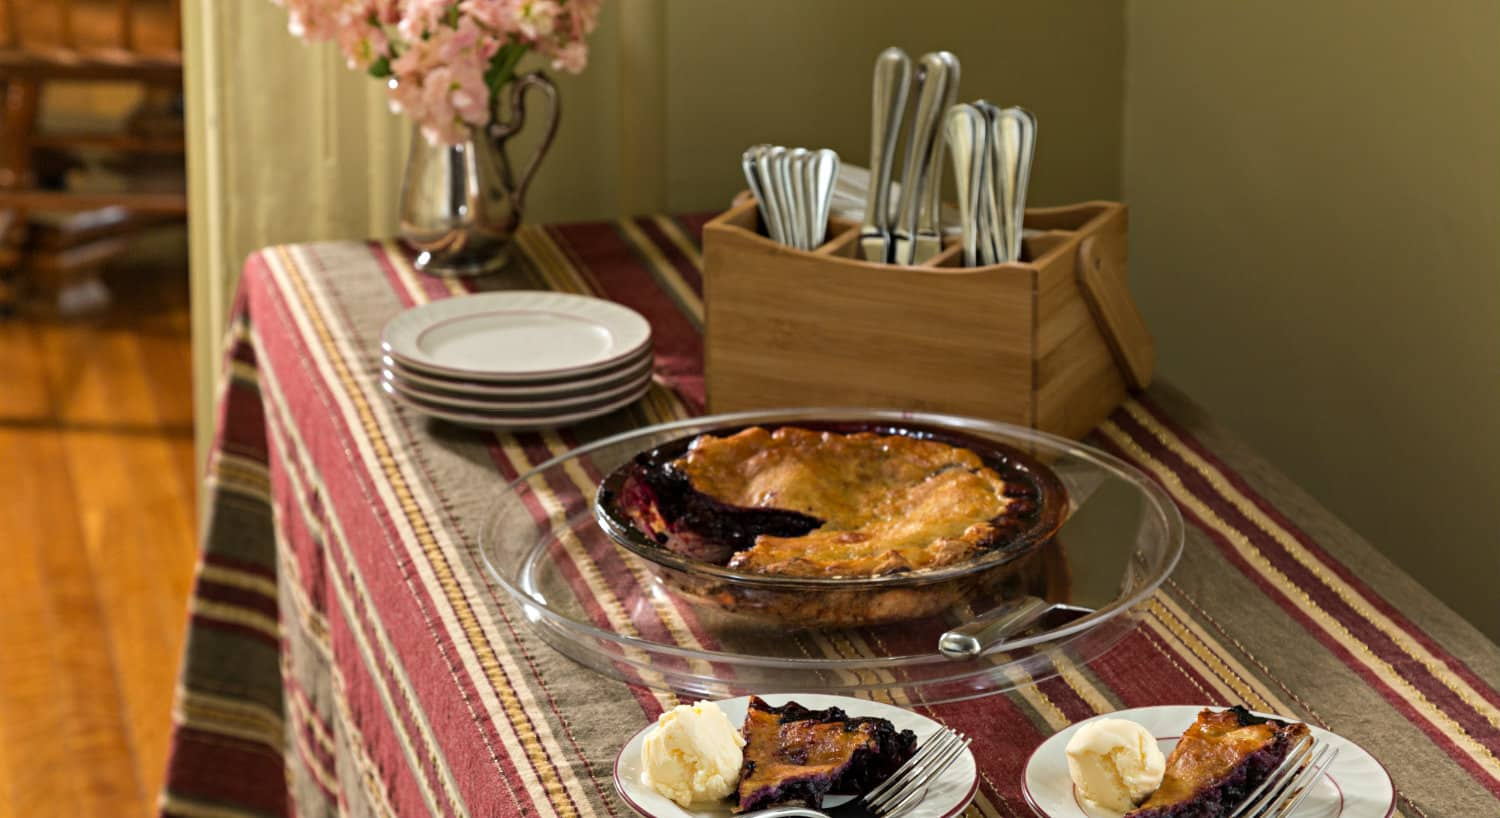 A table with a striped cloth holds a pie along with white plates and cutlery